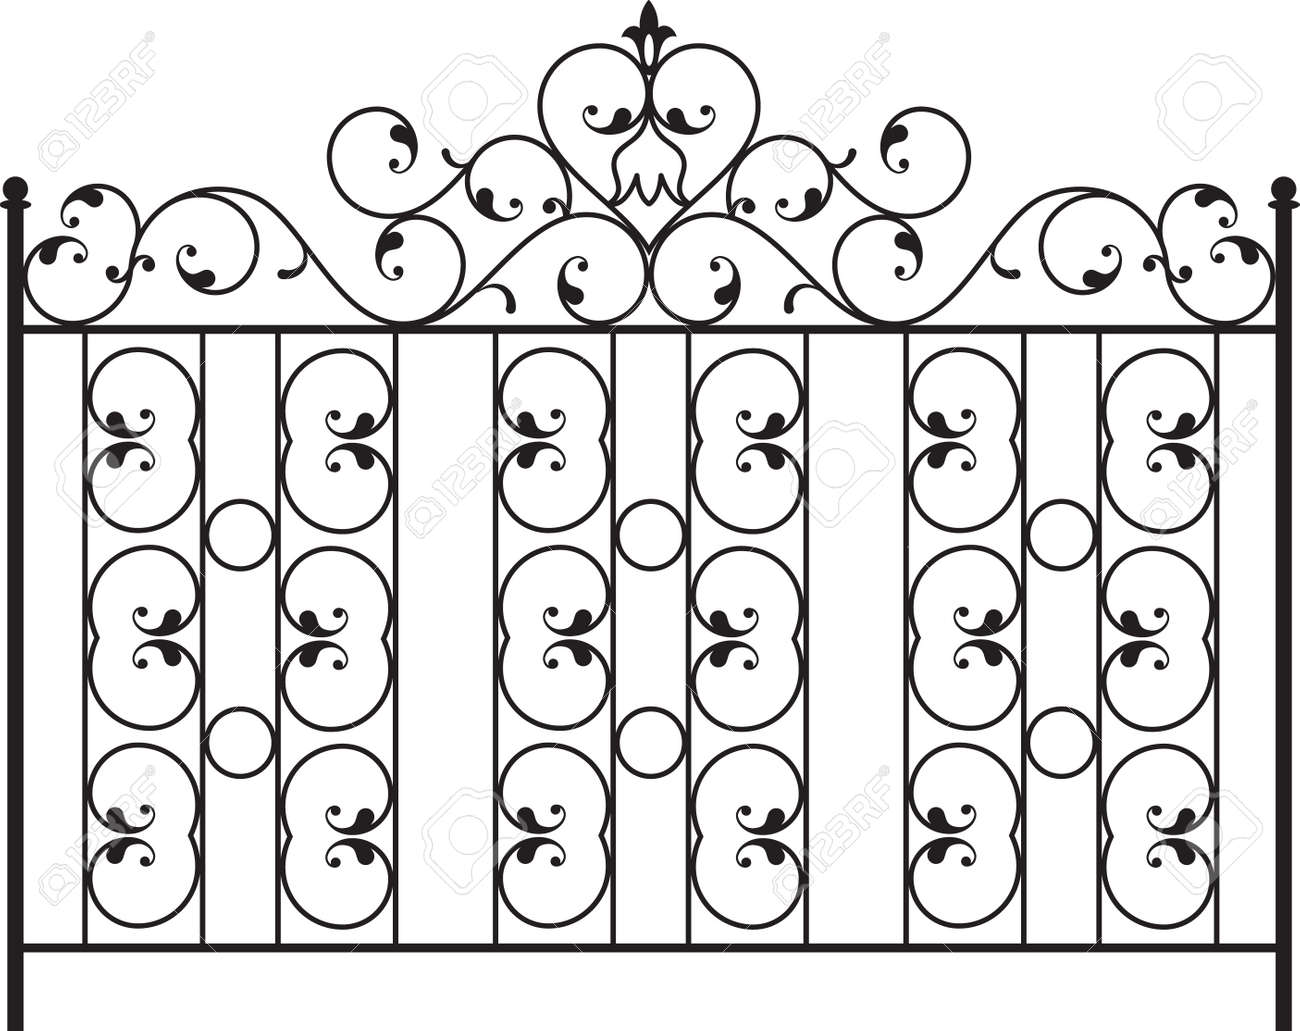 Grill design with wrought iron gate door fence window grill railing